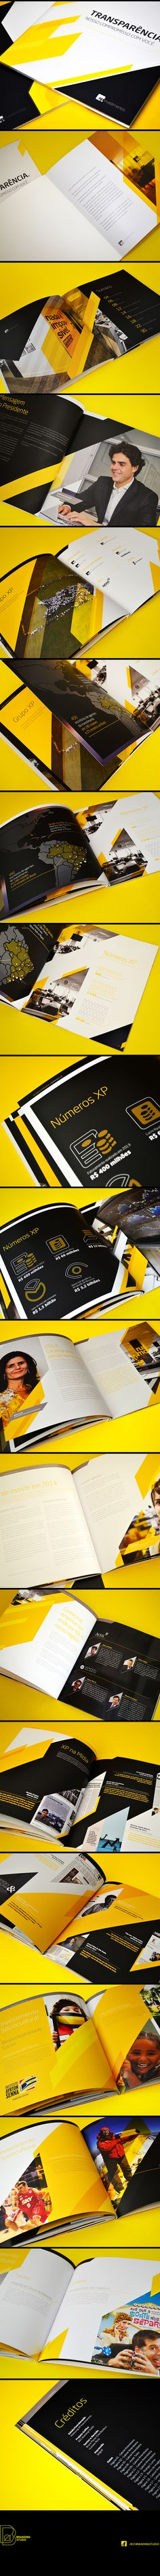 Annual Report XP Investimentos on Behance